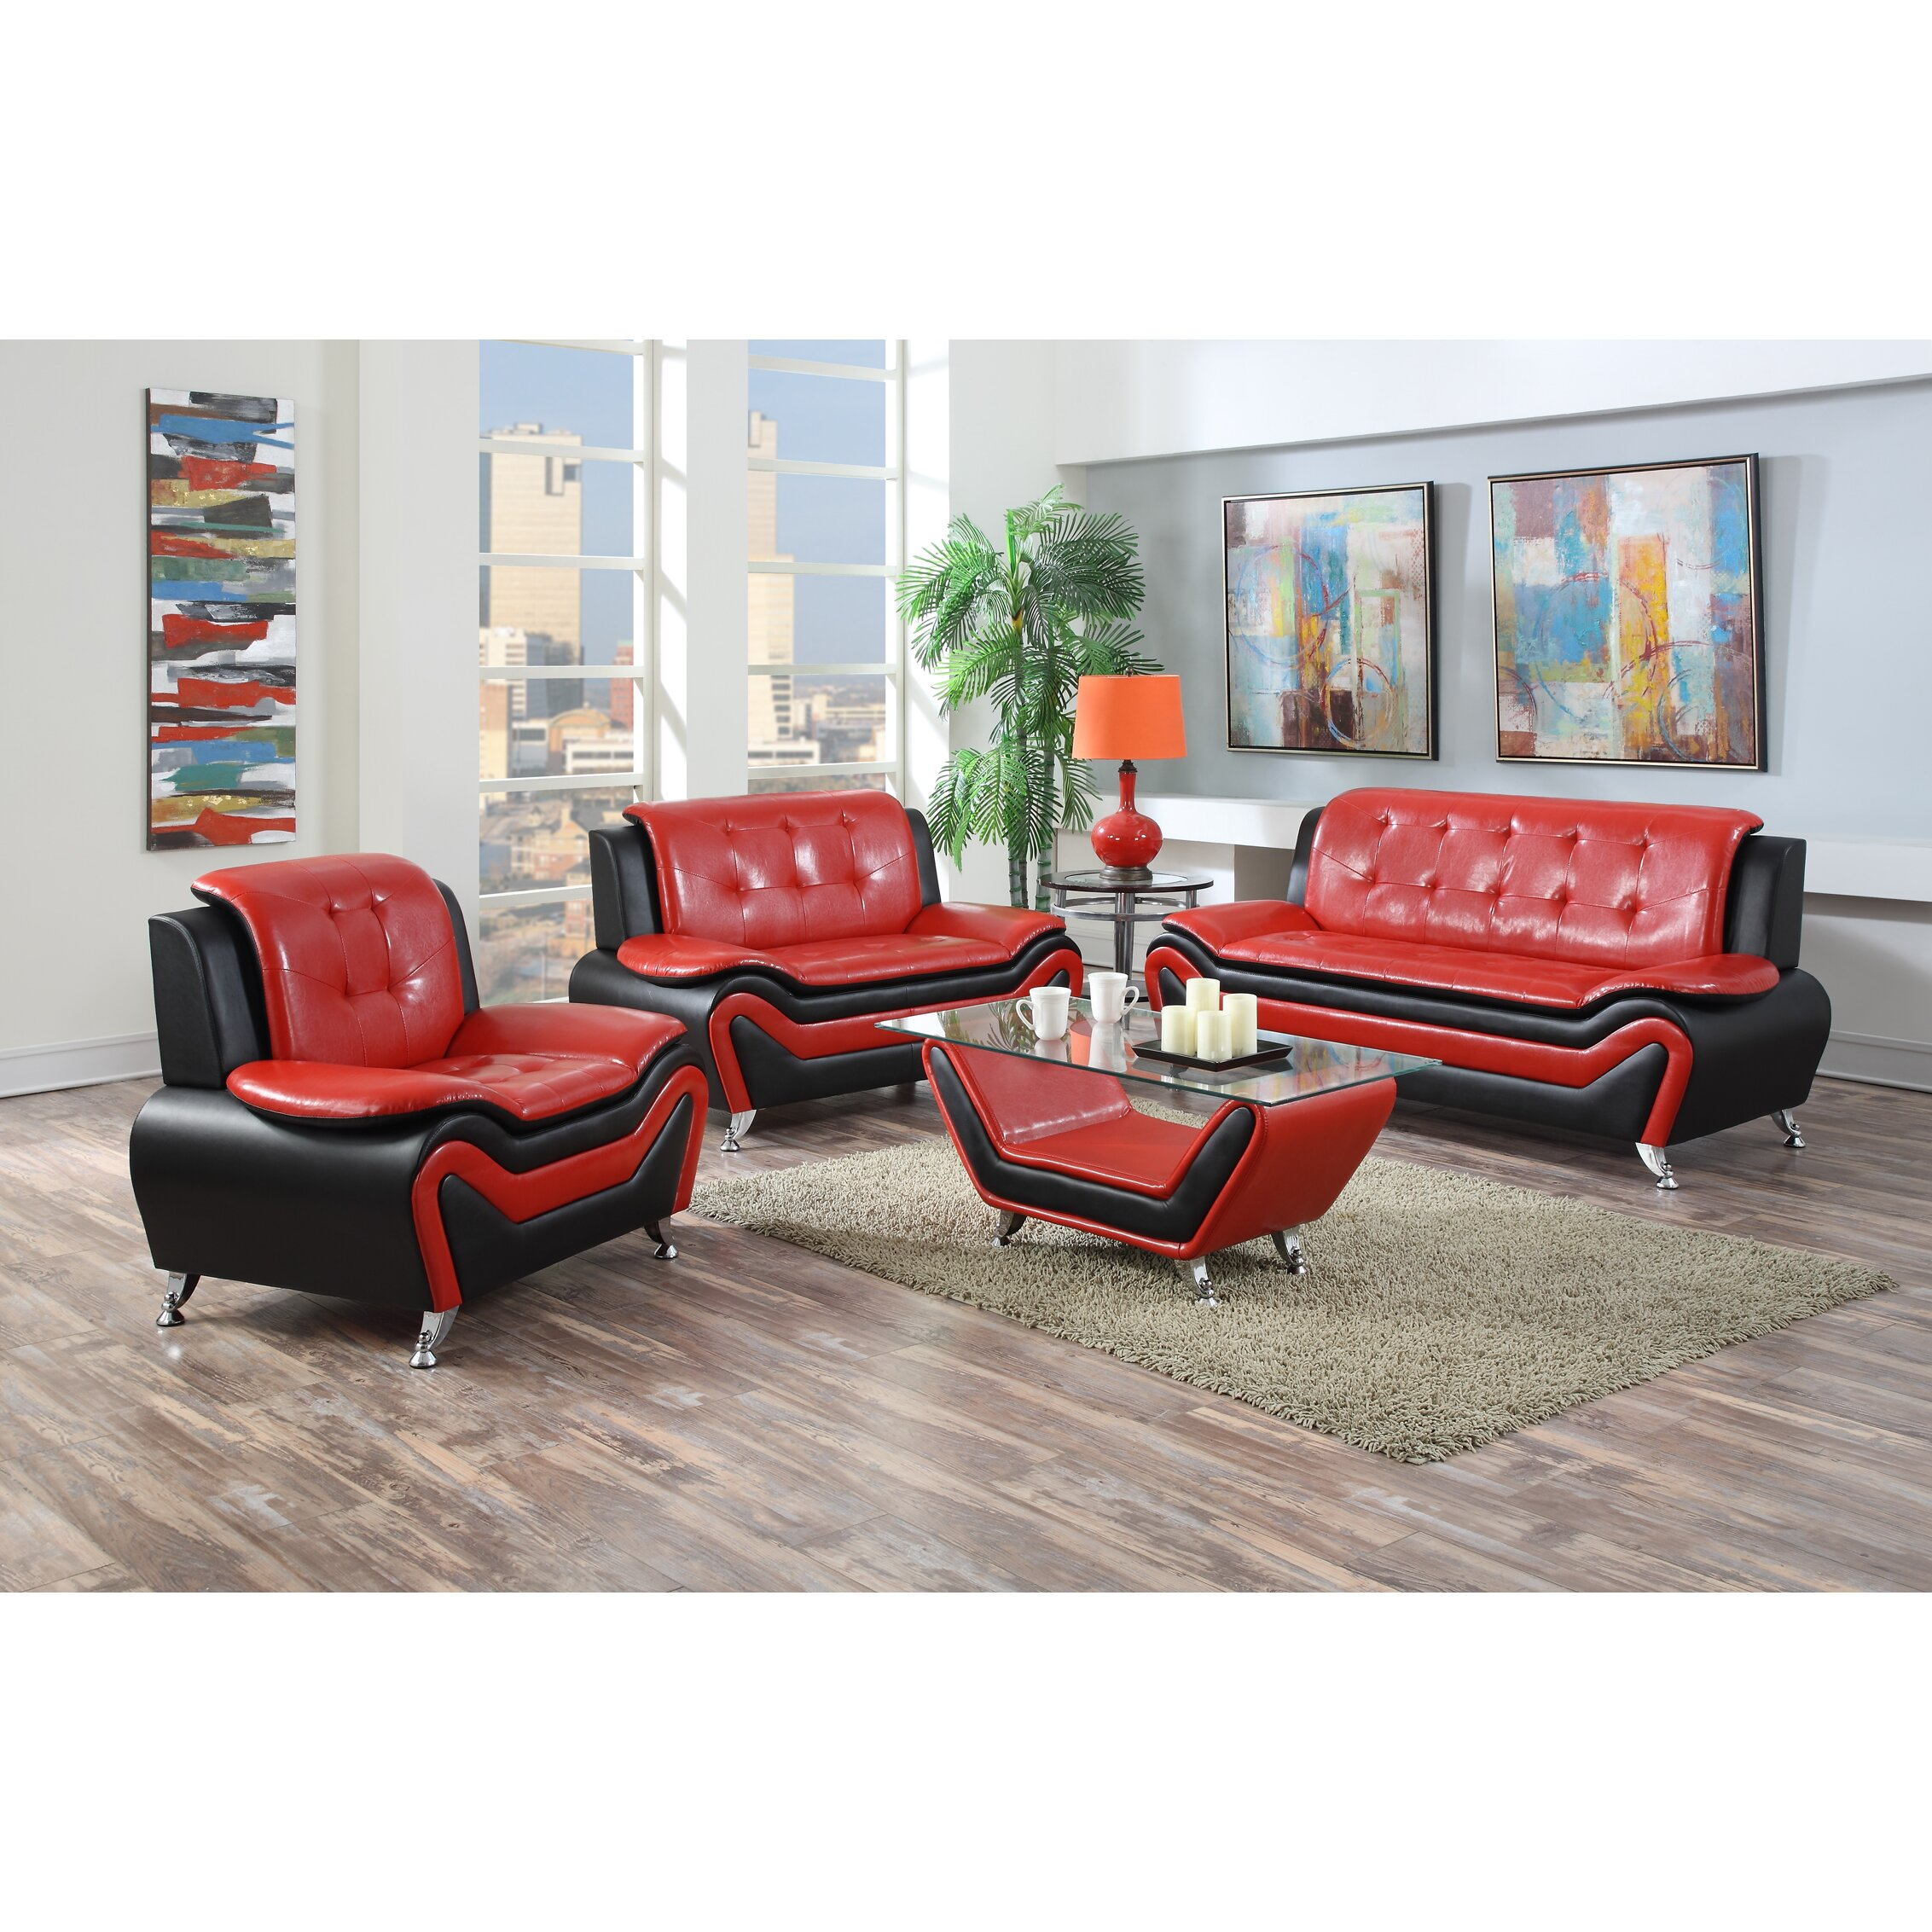 Container wanda 3 piece living room set reviews wayfair for Living room 3 piece sets